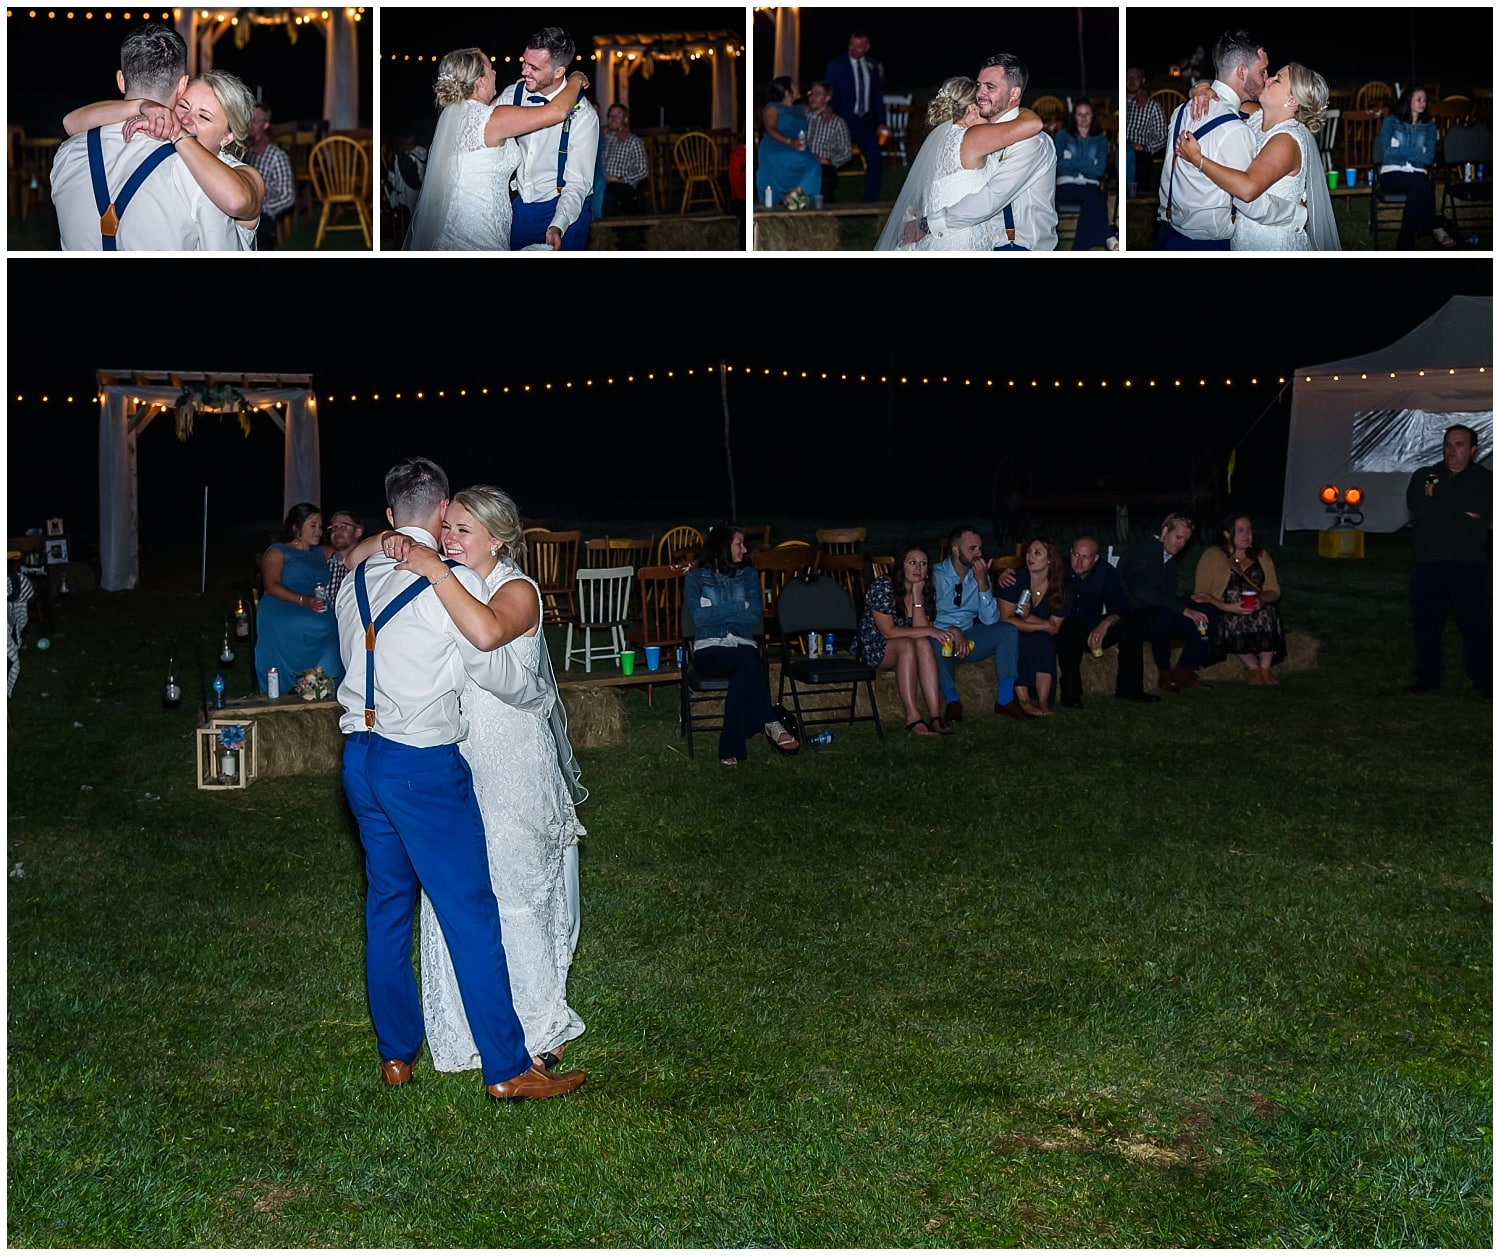 The bride and groom have their first dance during their wedding at the Barn at Sadie Belle Farm in Hantsport NS.